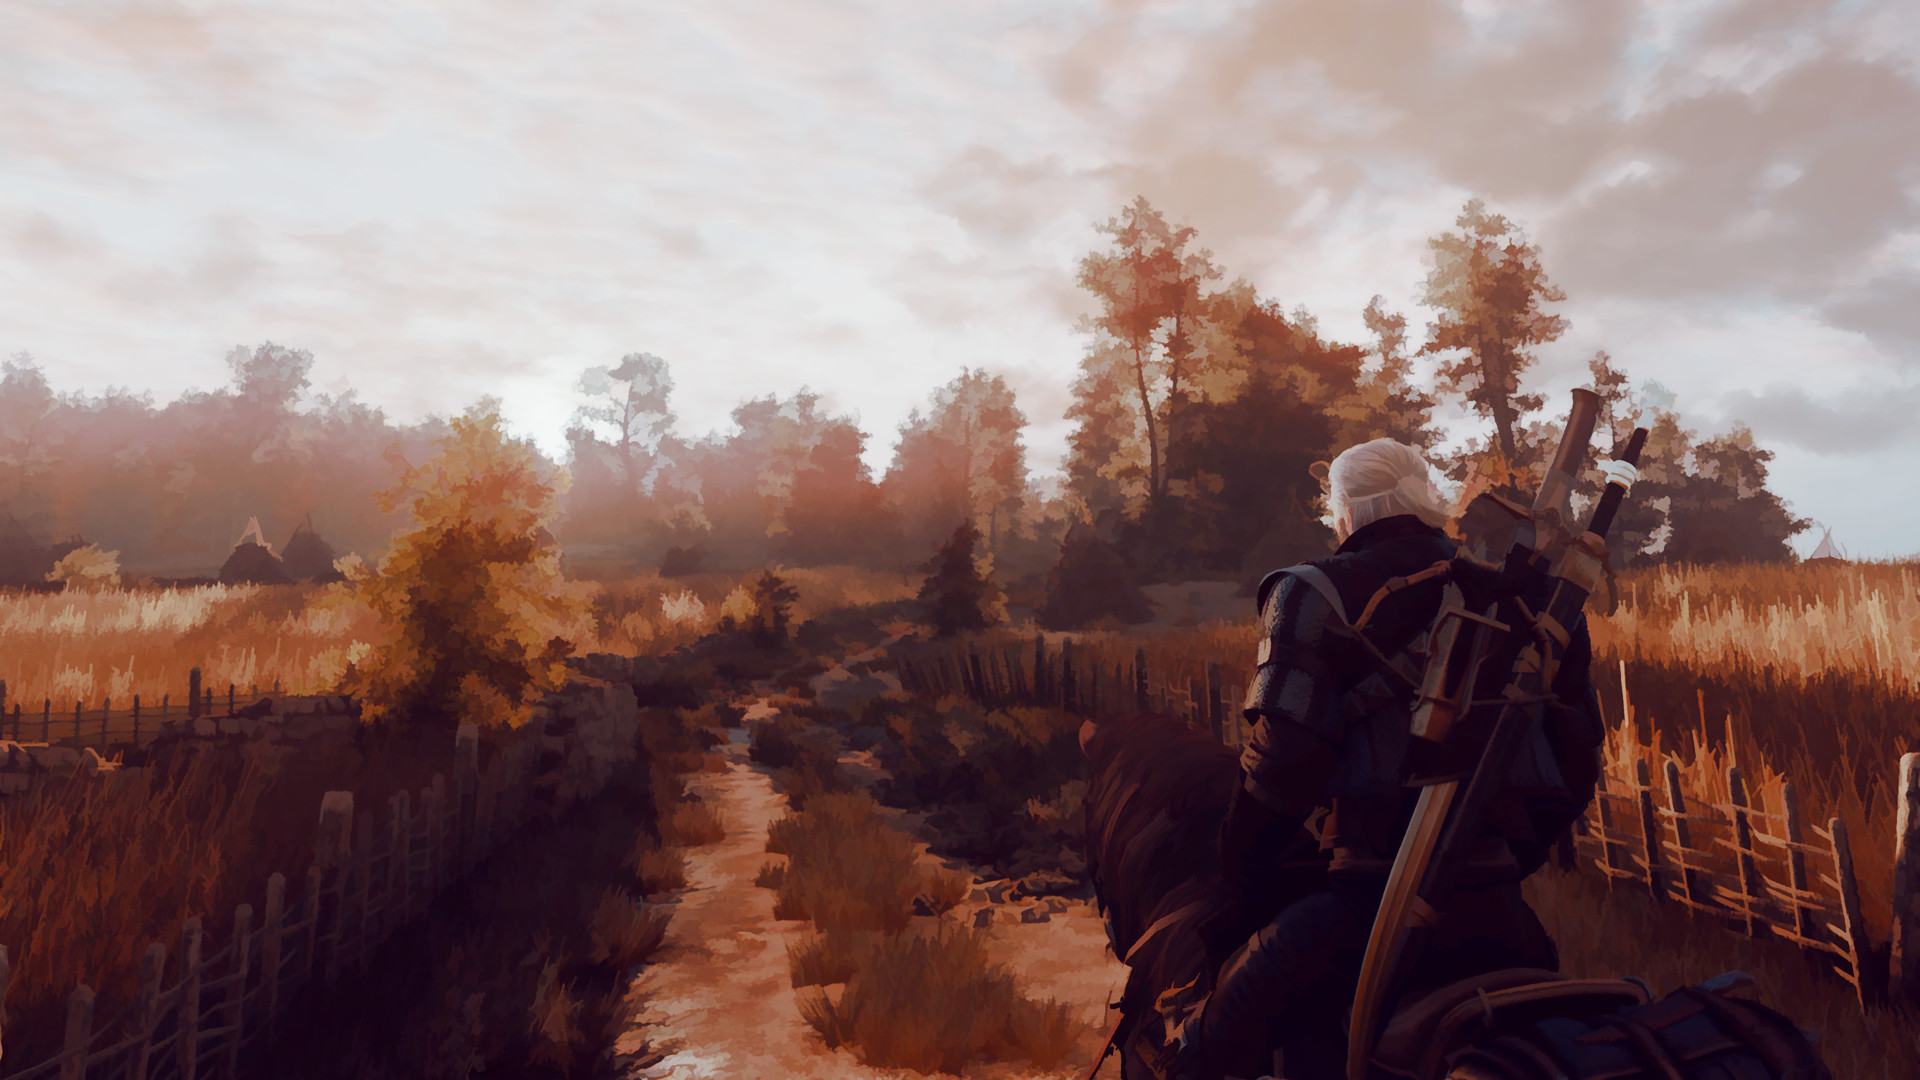 Here are 63 screenshots of The Witcher III made to look like paintings  using mods and photoshop; all images are 1080p. For those using ultrawide  (21:9) …